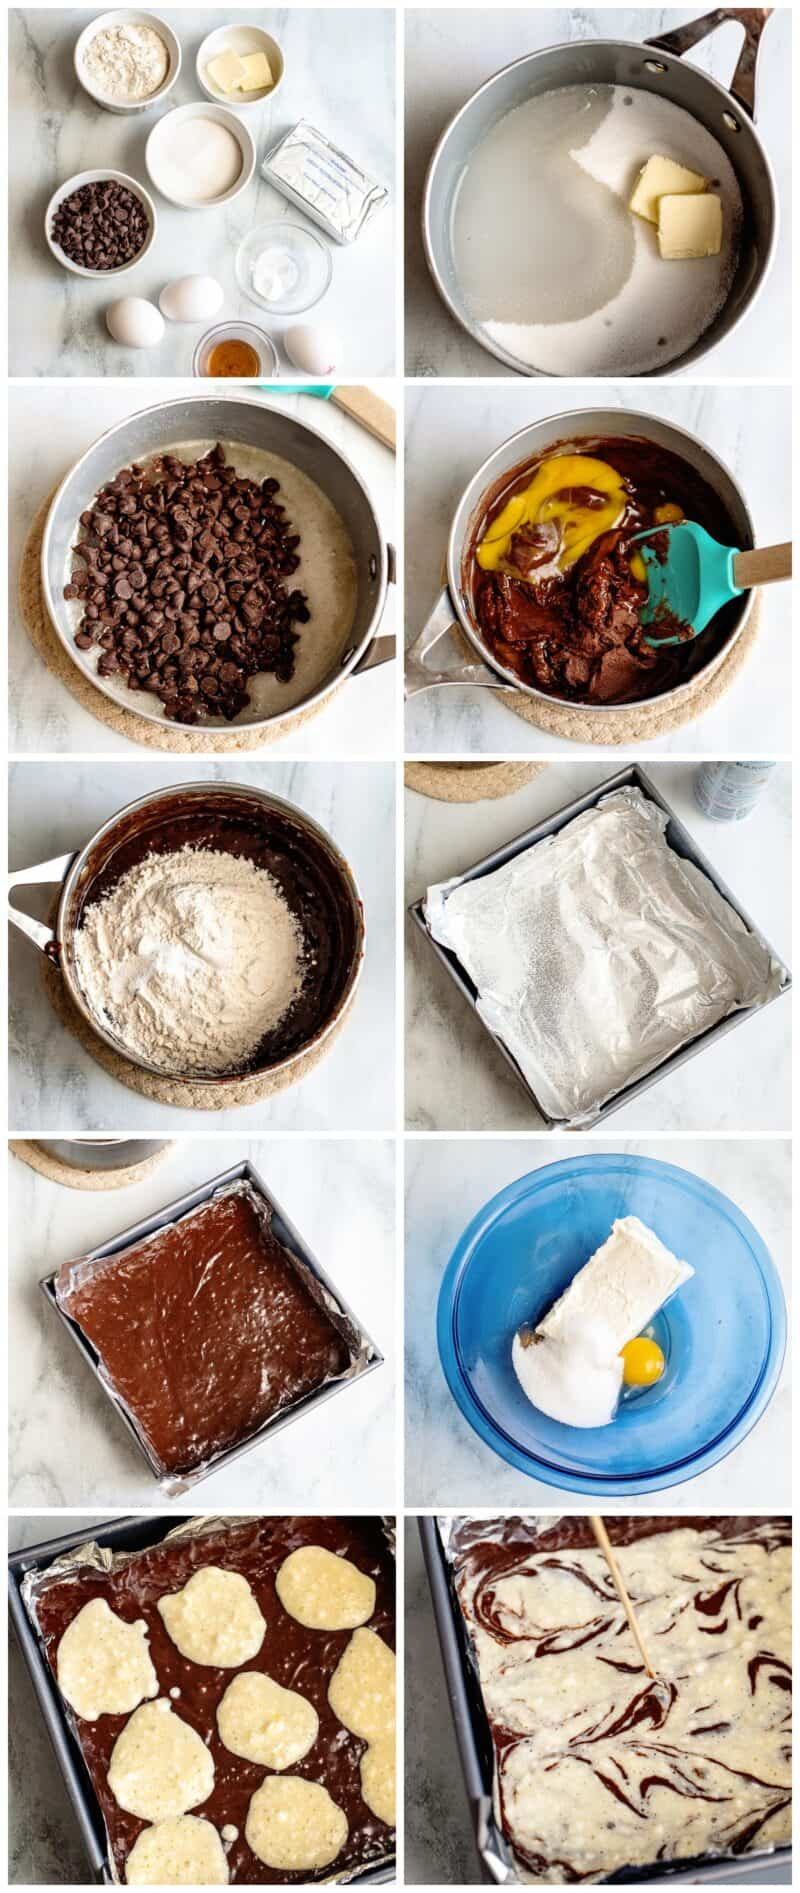 step by step photos of how to make cream cheese brownies